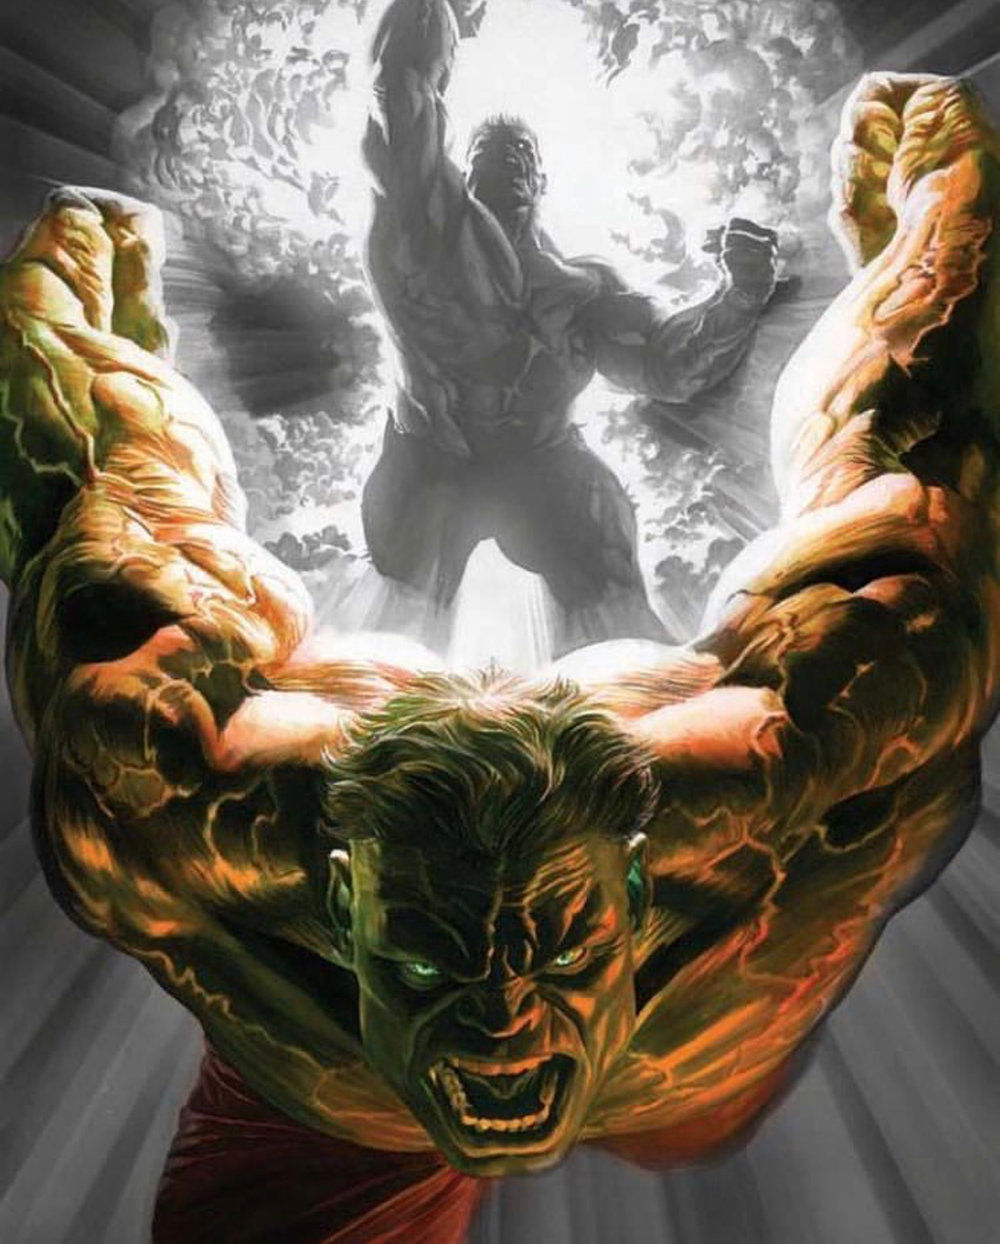 The Immortal Hulk  by Alex Ross.